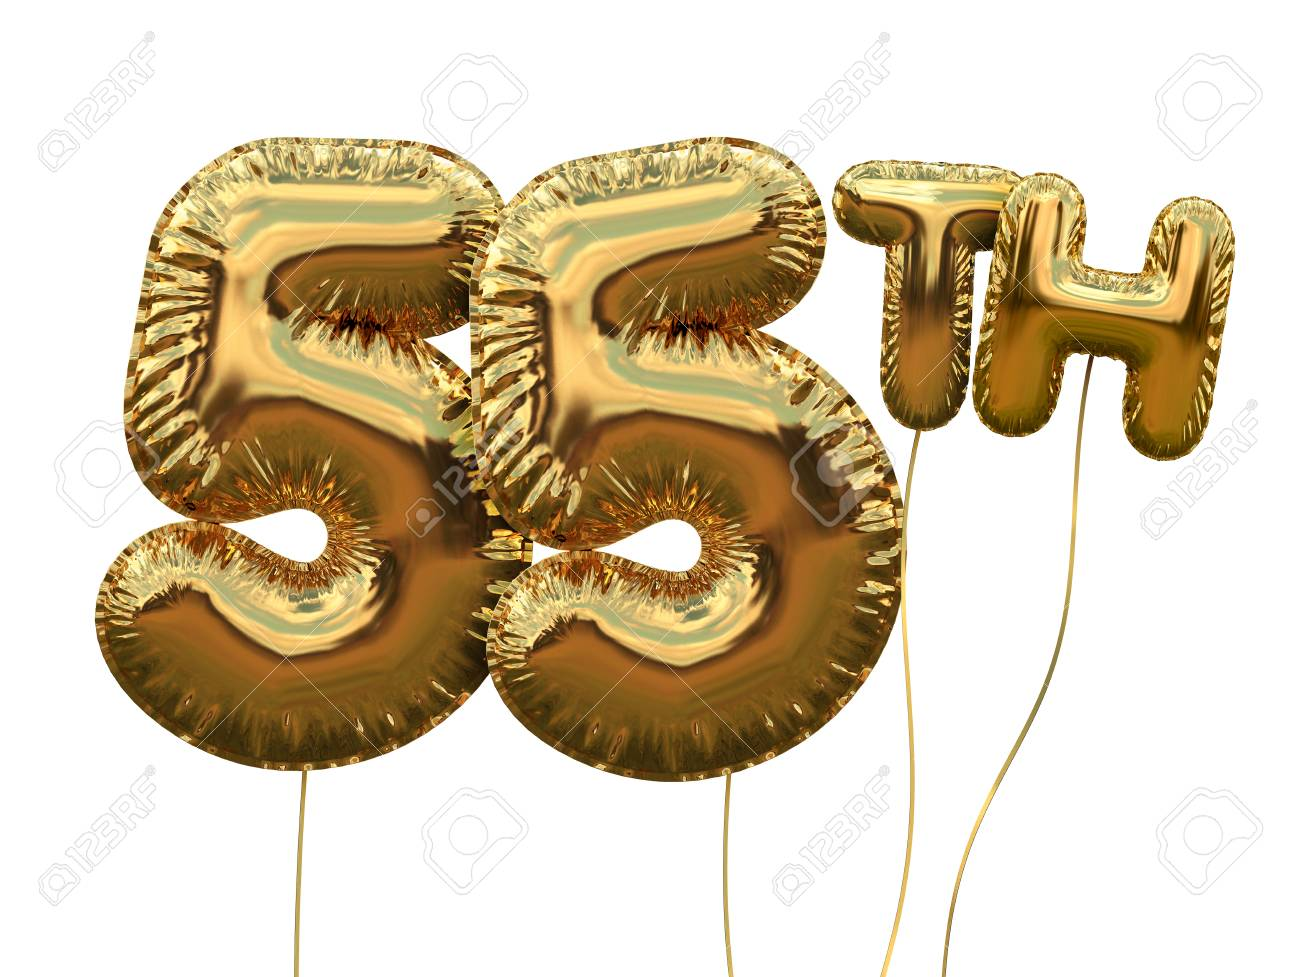 Gold Number 55 Foil Birthday Balloon Isolated On White Golden Party Celebration 3D Rendering